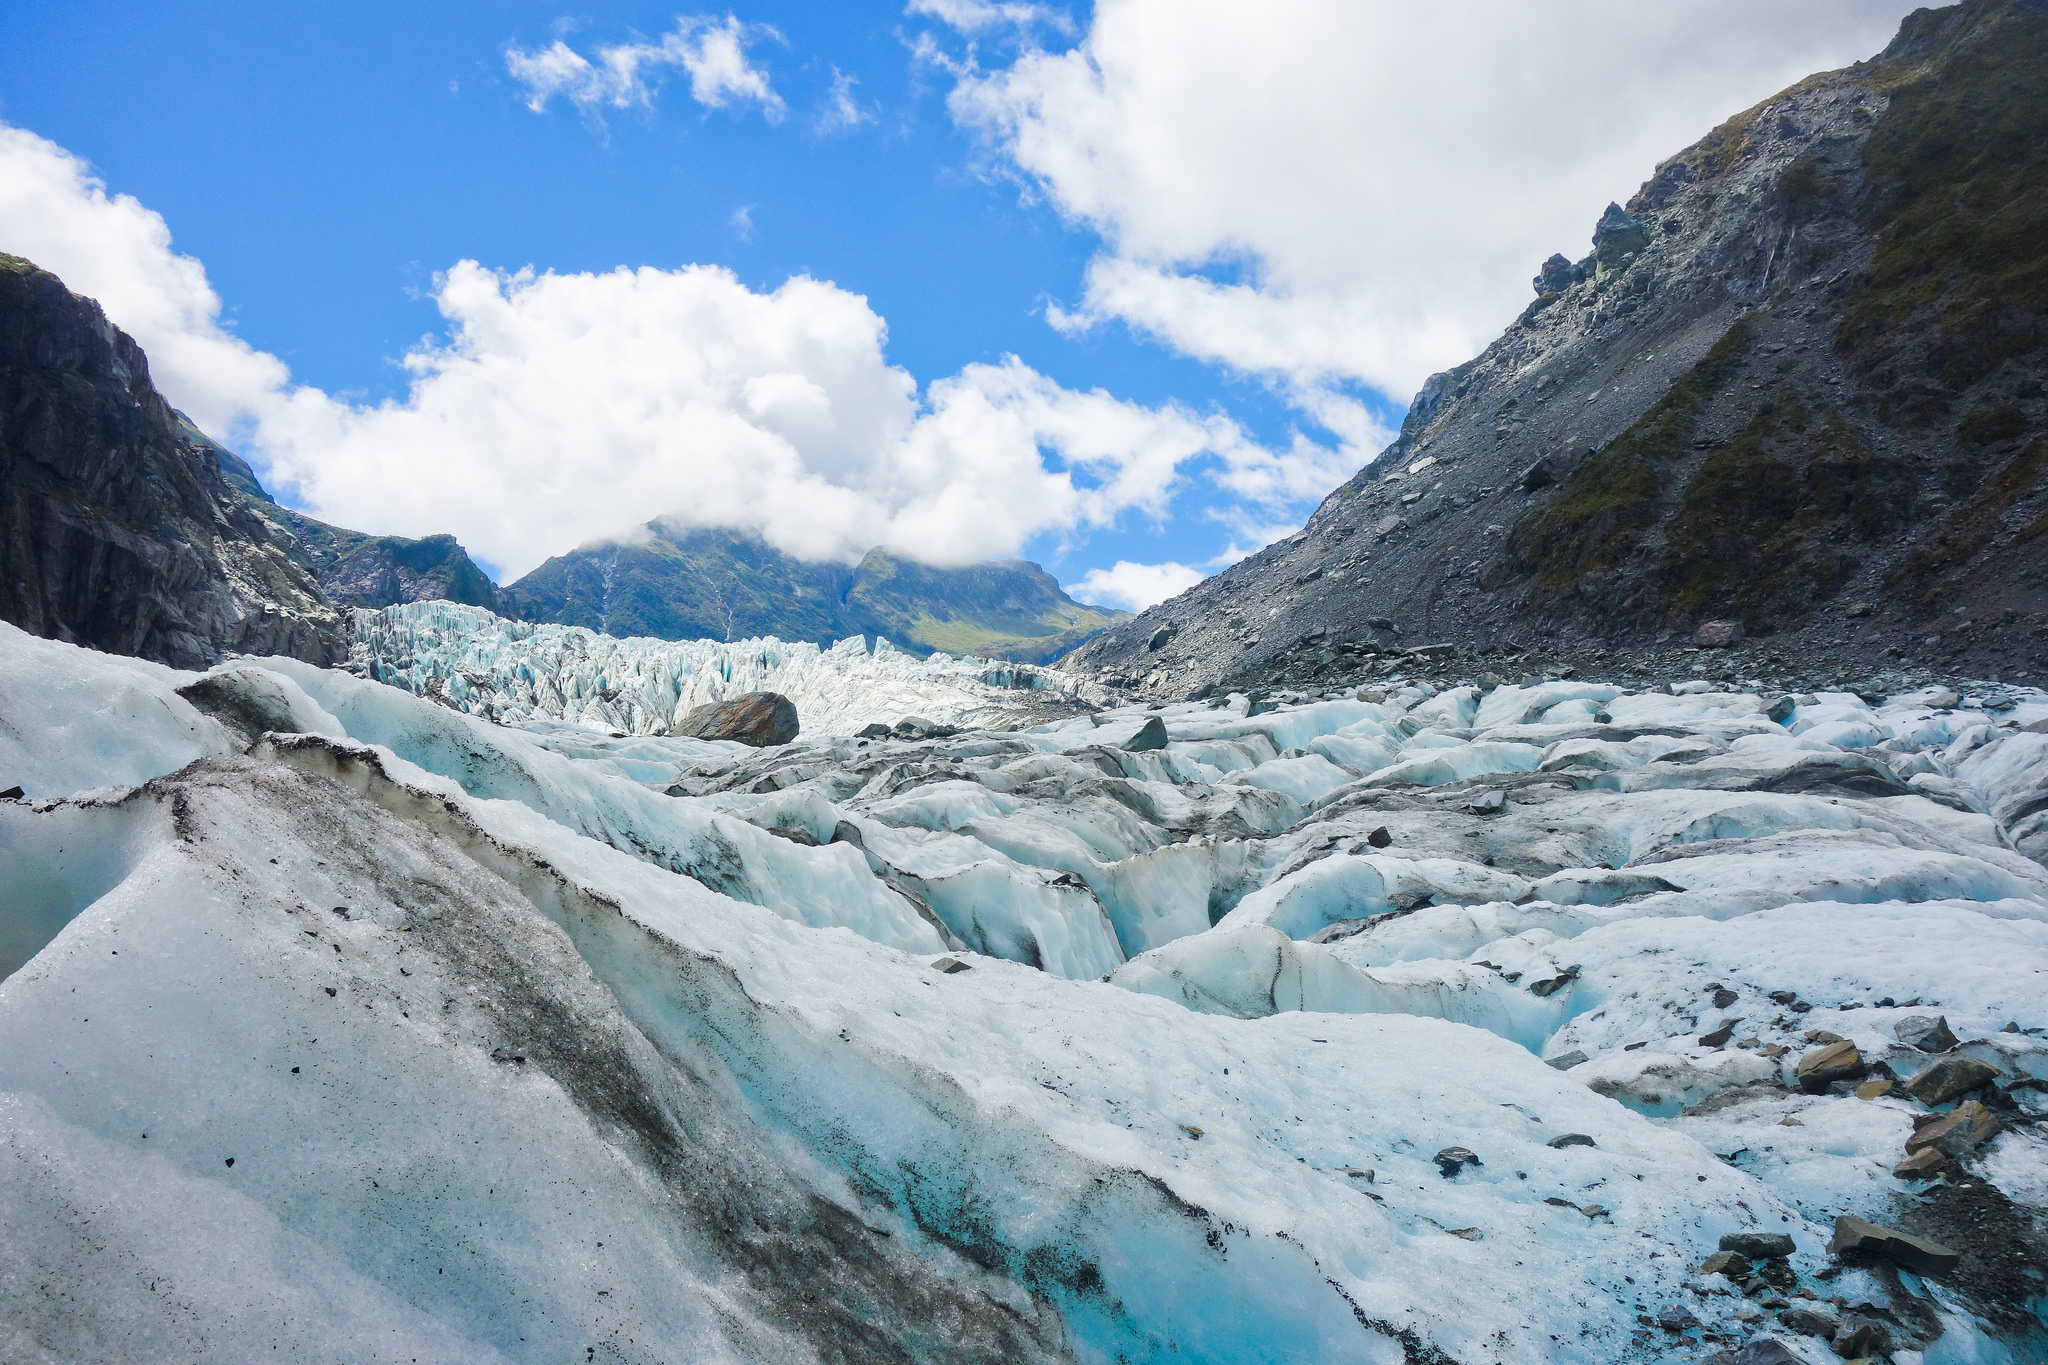 Carla has been around the world, but her favourite place remains the South Island region near the Fox Glacier (pictured). Photo credit: Flying Kiwi Tours // Flickr Creative Commons